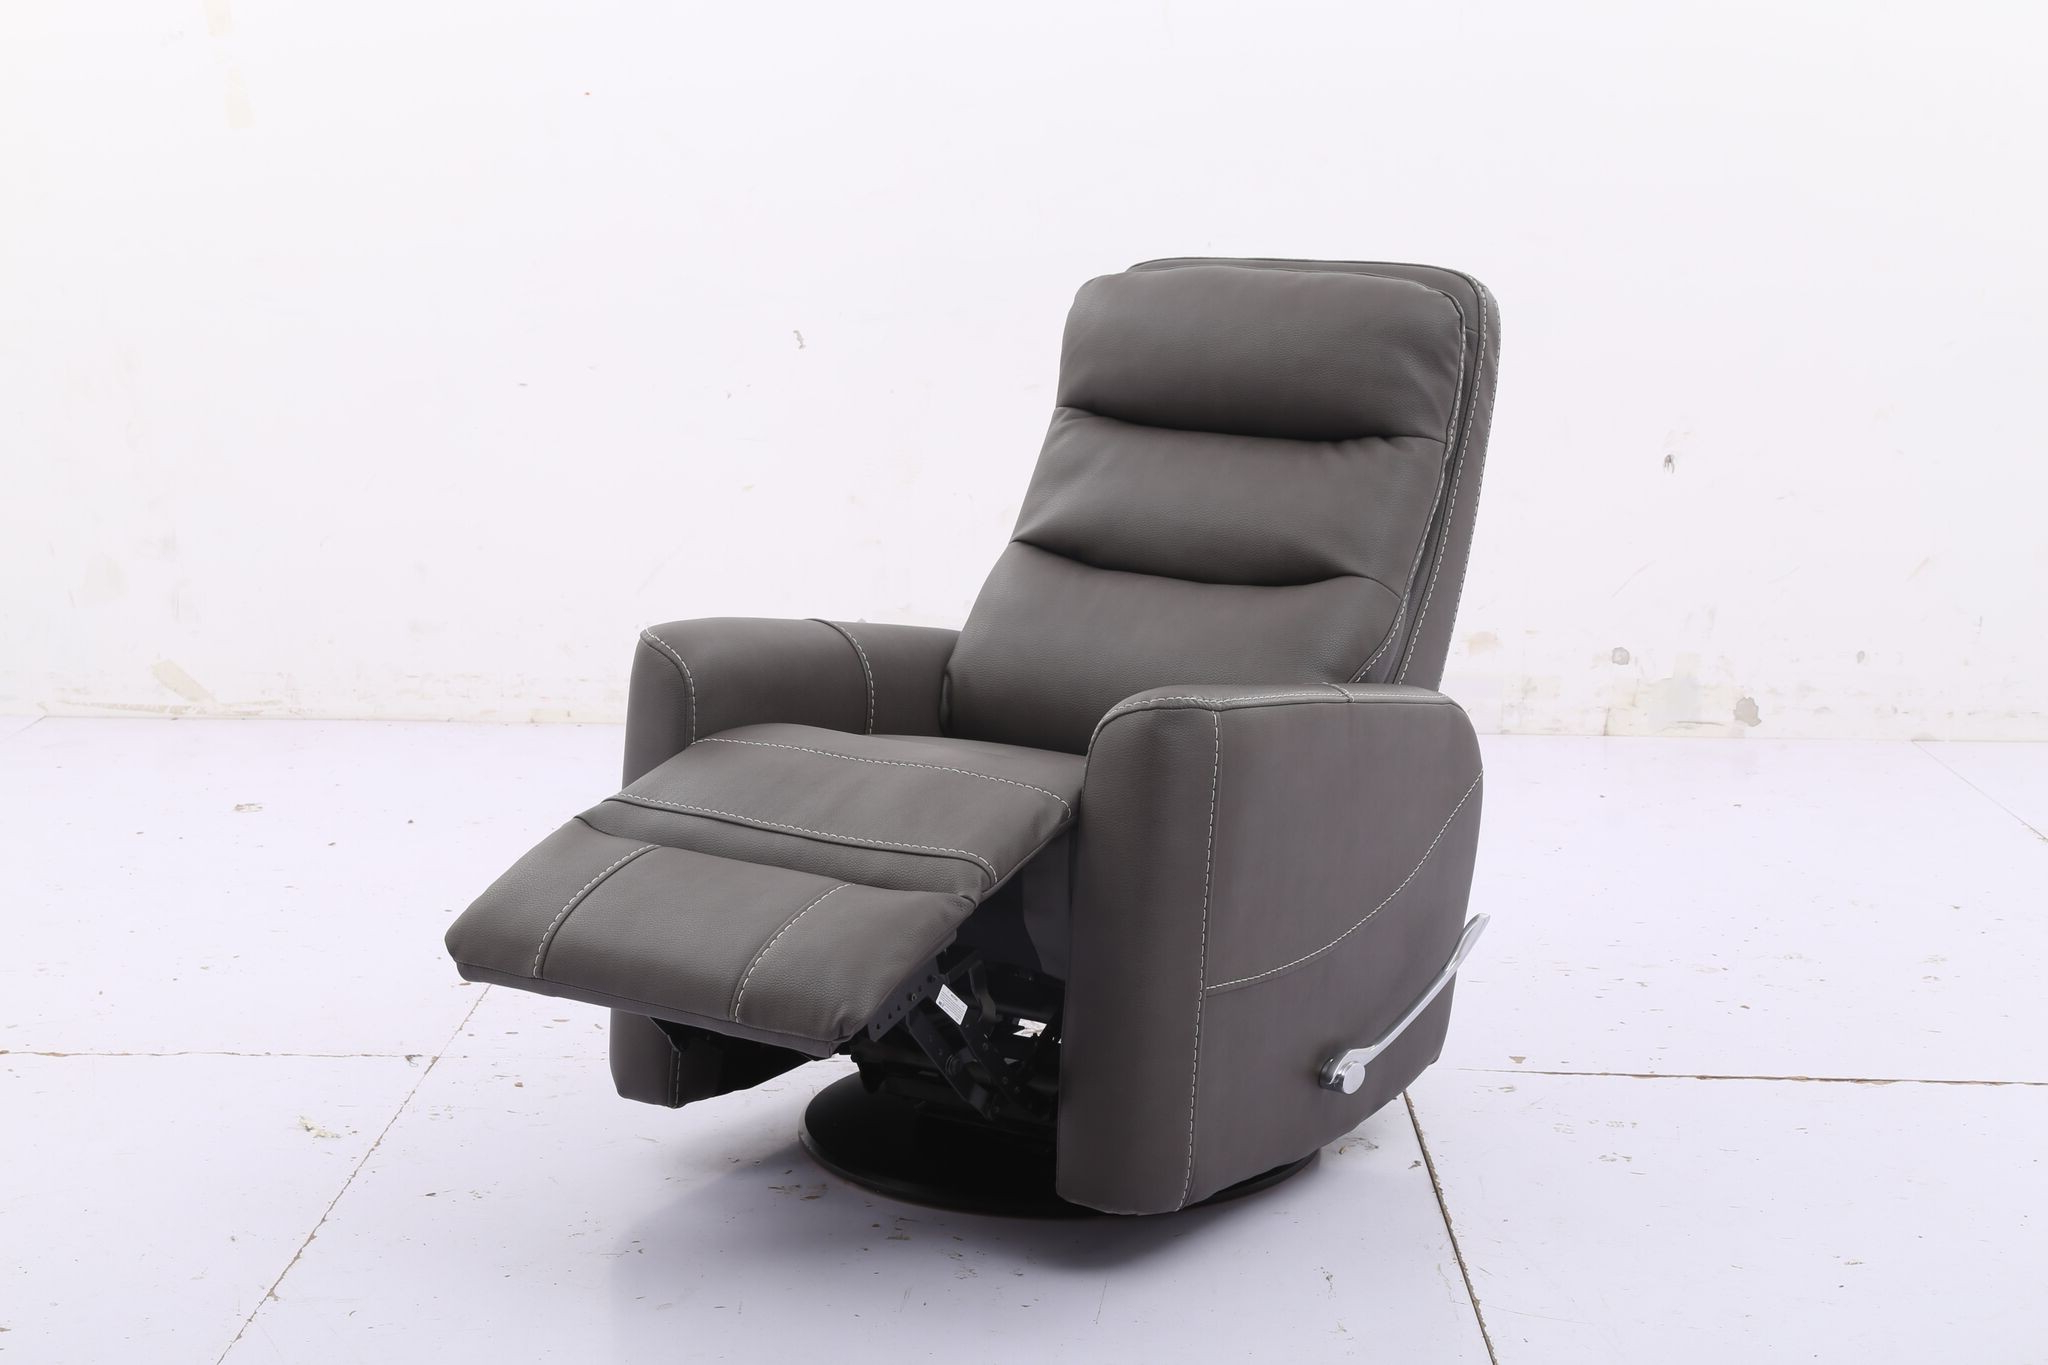 2019 Hercules Haze Swivel Glider Recliner With Articulating Headrest For Hercules Oyster Swivel Glider Recliners (View 10 of 20)